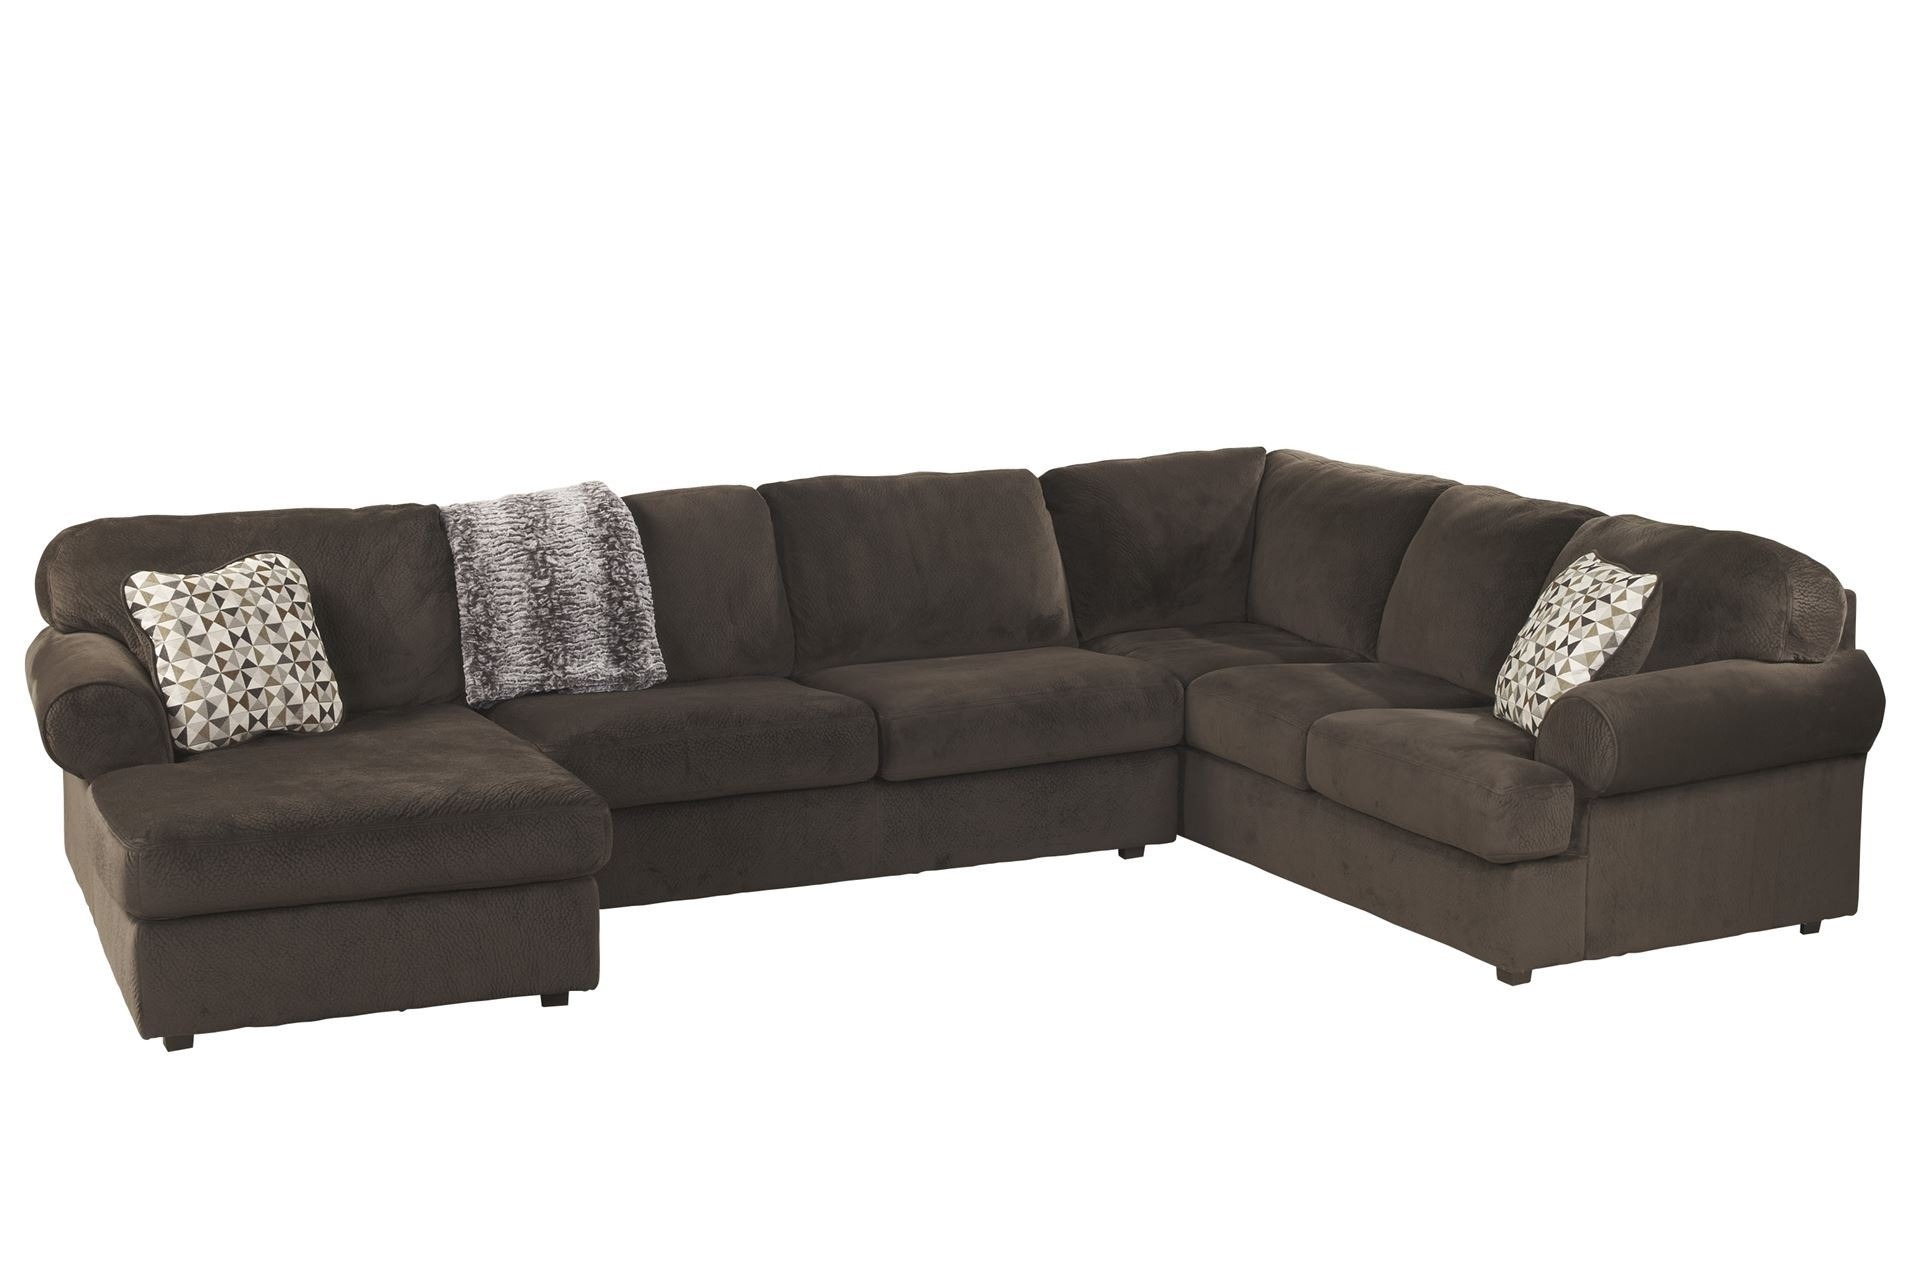 Jessa Place Chocolate 3 Piece Sectional W/raf Chaise | Living Rooms Pertaining To Homemakers Sectional Sofas (View 6 of 10)